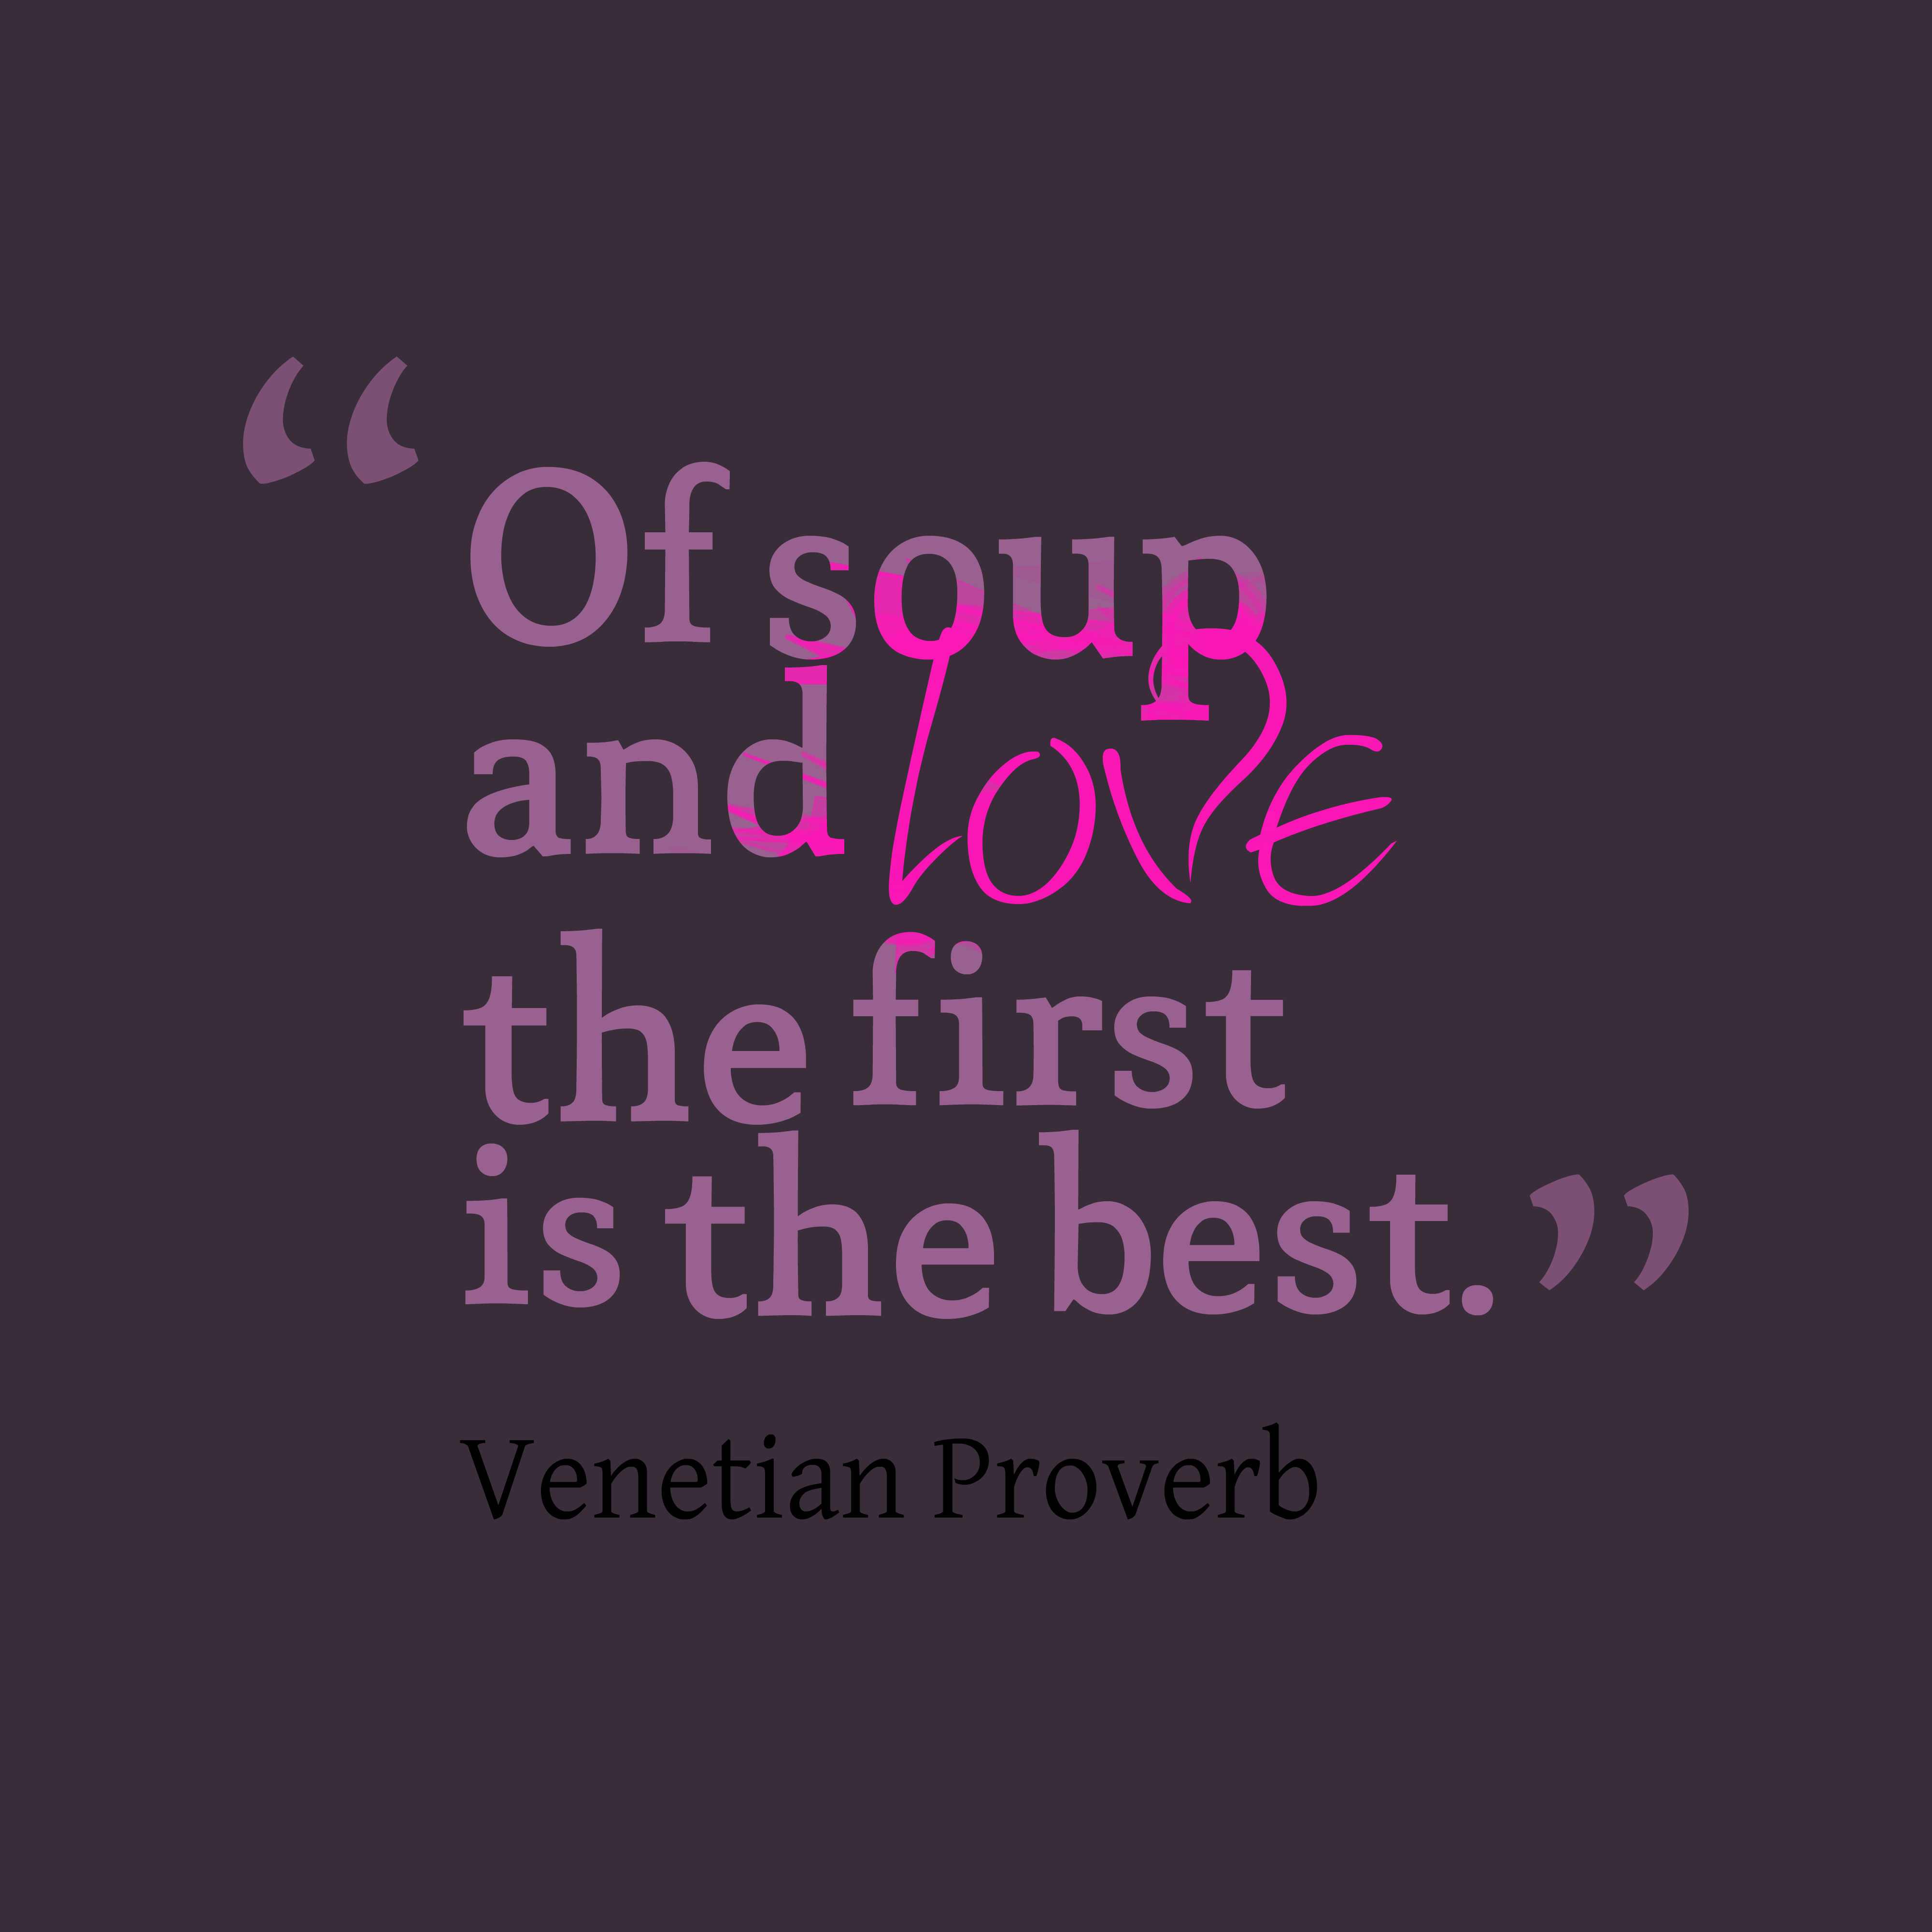 Picture » Venetian Proverb About Love